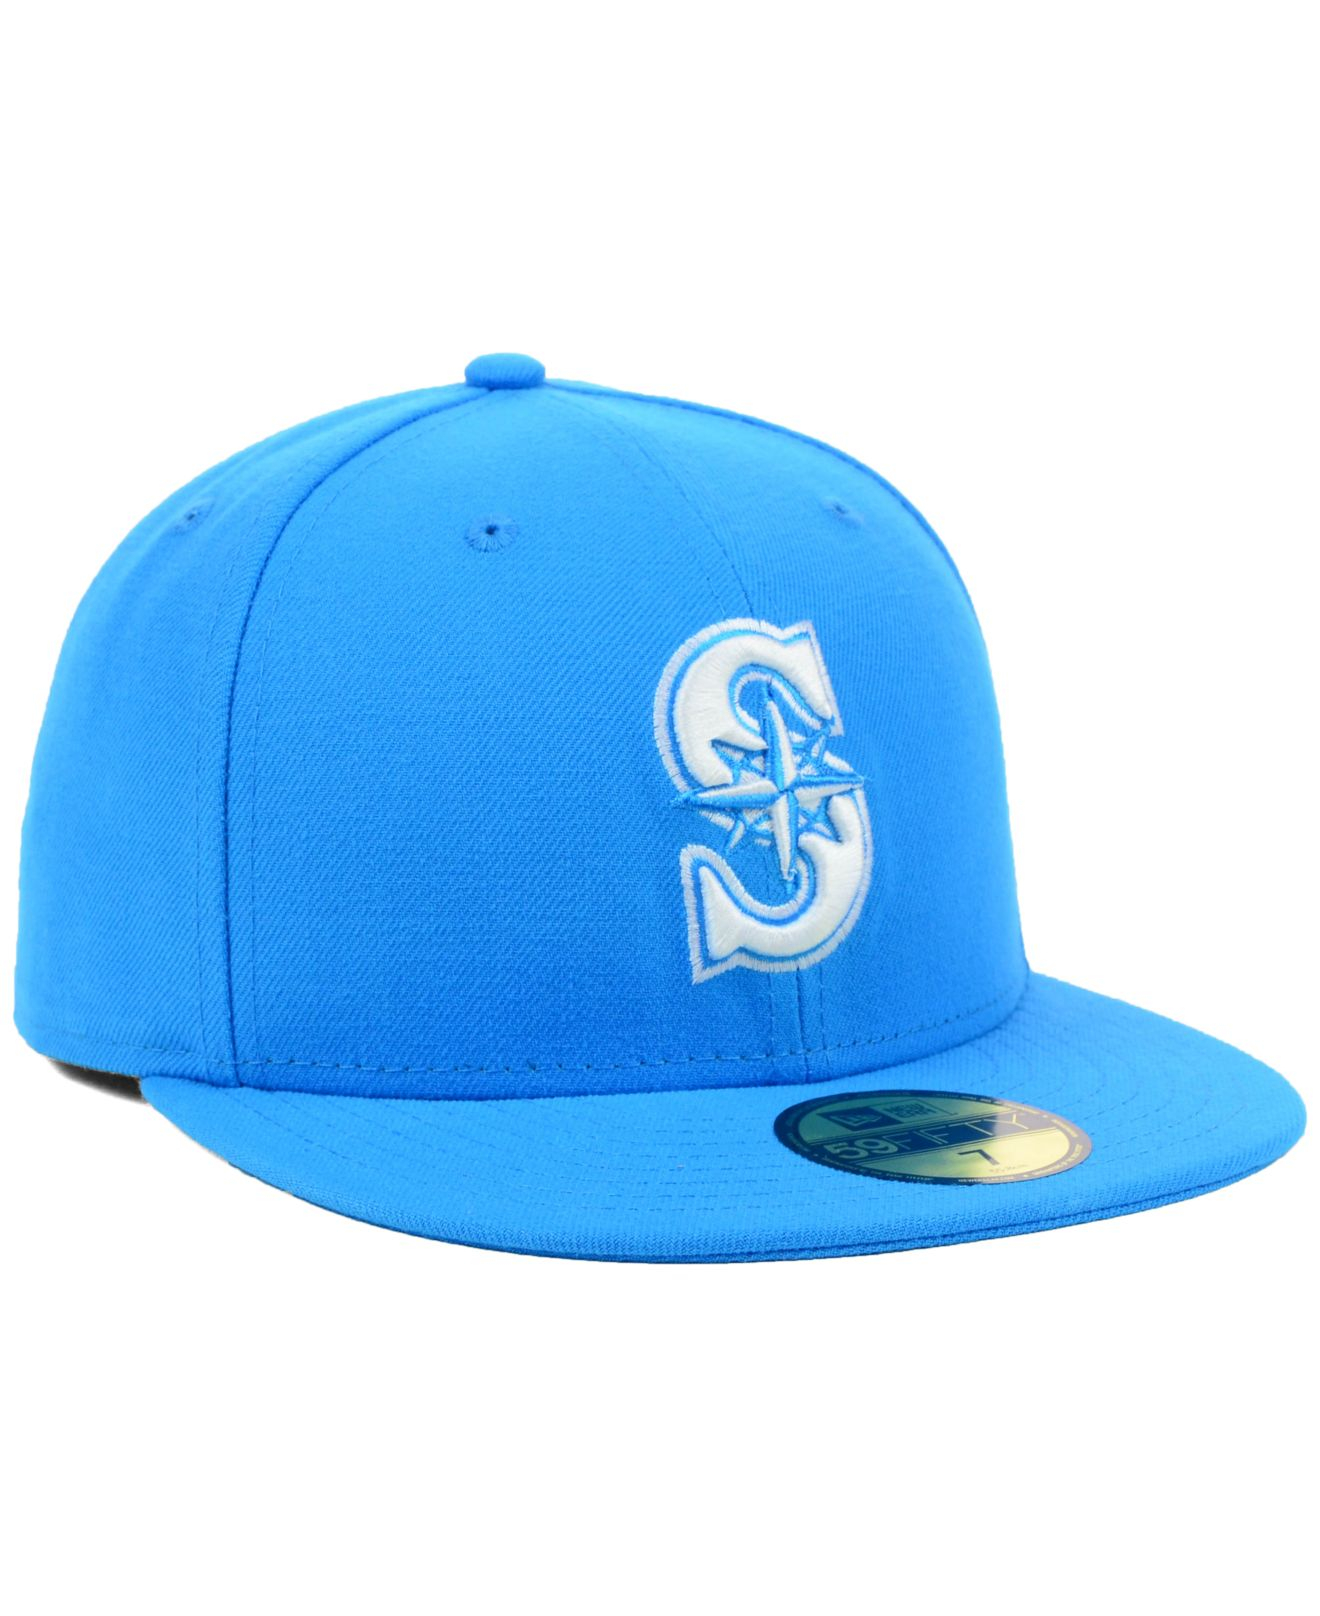 quality design 4fc8e 1aaba ... sweden lyst ktz seattle mariners mlb c dub 59fifty cap in blue for men  58700 d29d8